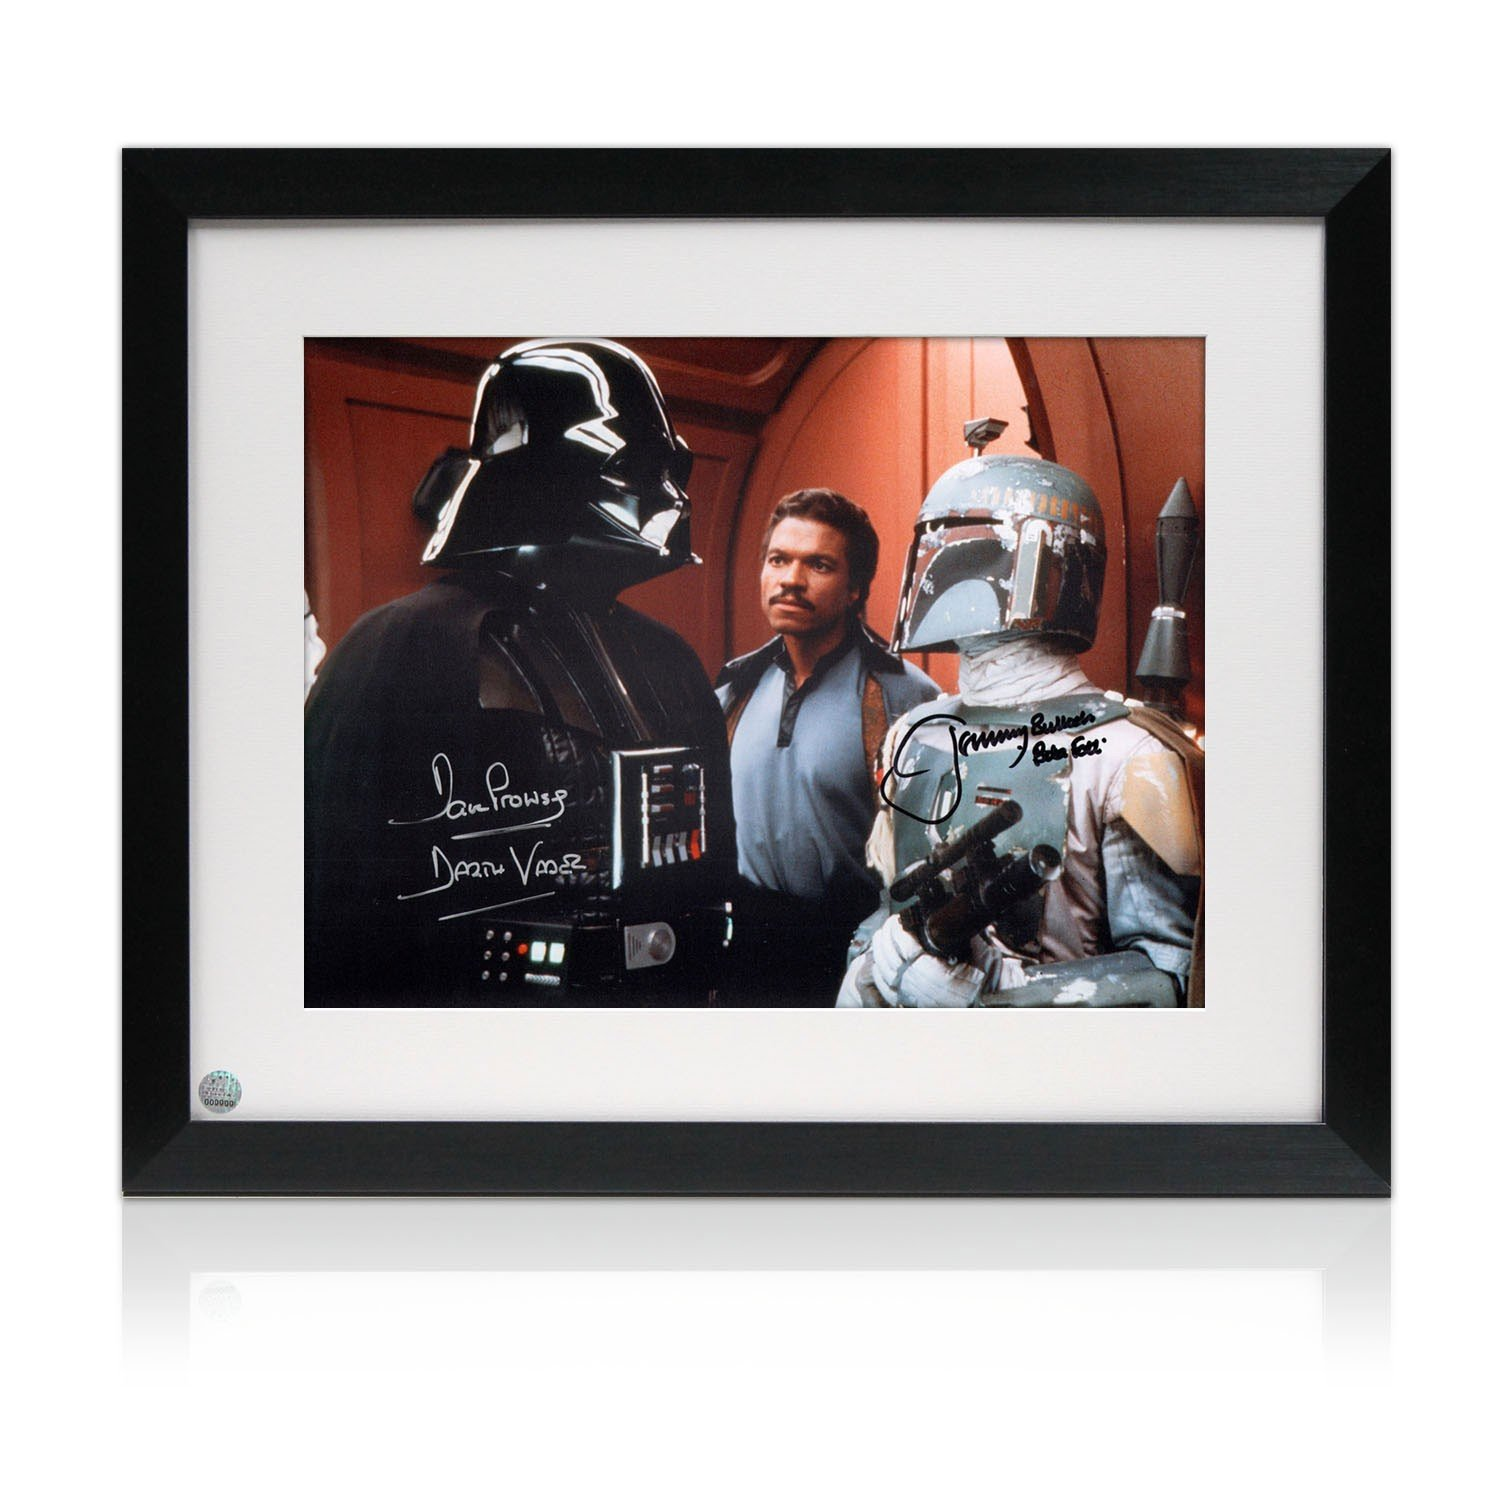 boba fett und darth vader signed gerahmtes foto jetzt kaufen. Black Bedroom Furniture Sets. Home Design Ideas